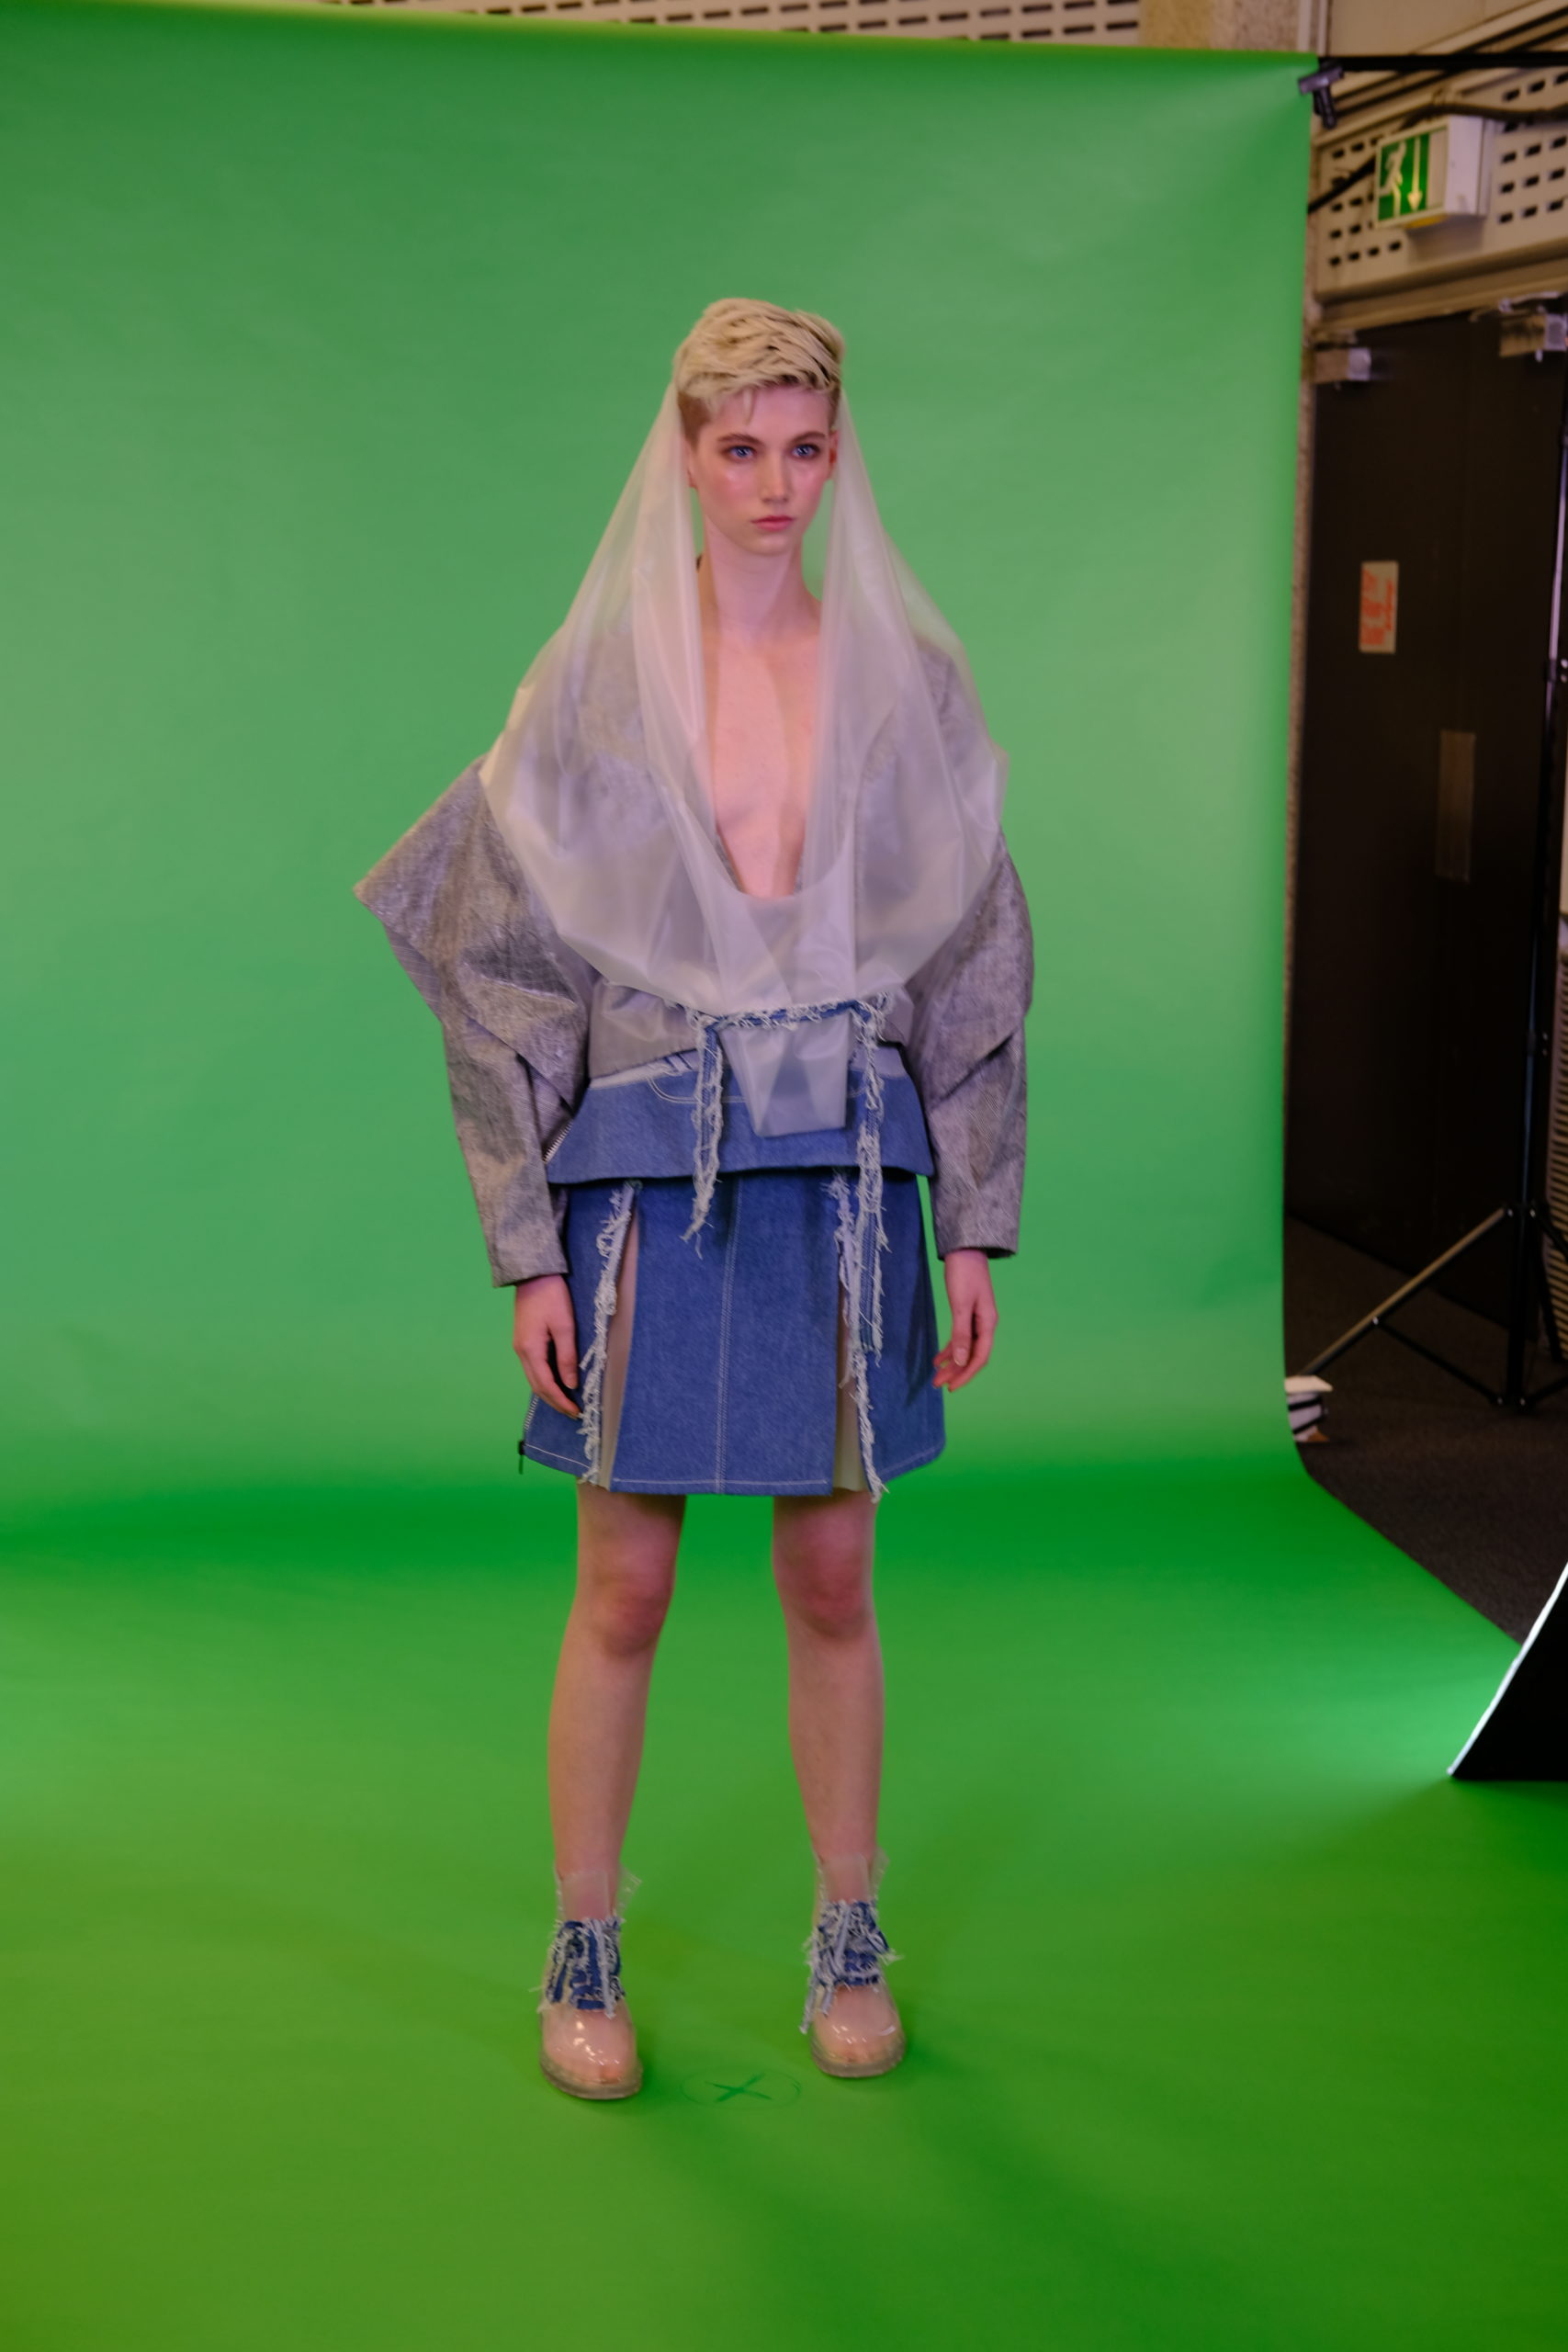 Model in from a green screen photo shoot set up, Fashion Innovation Agency